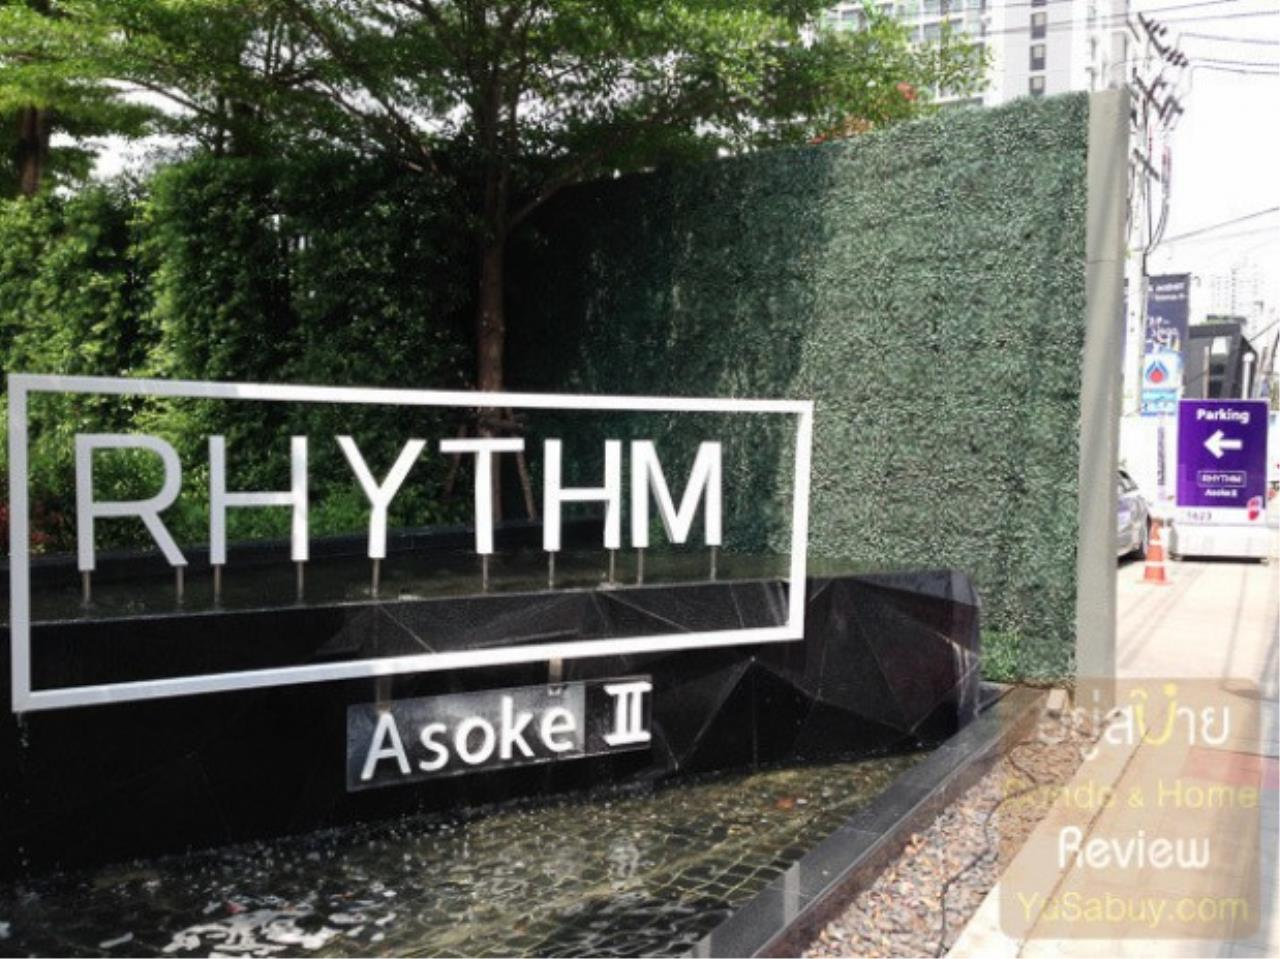 RE/MAX CondoDee Agency's Under-Market Price Condo in Rhythm Asoke 2 11